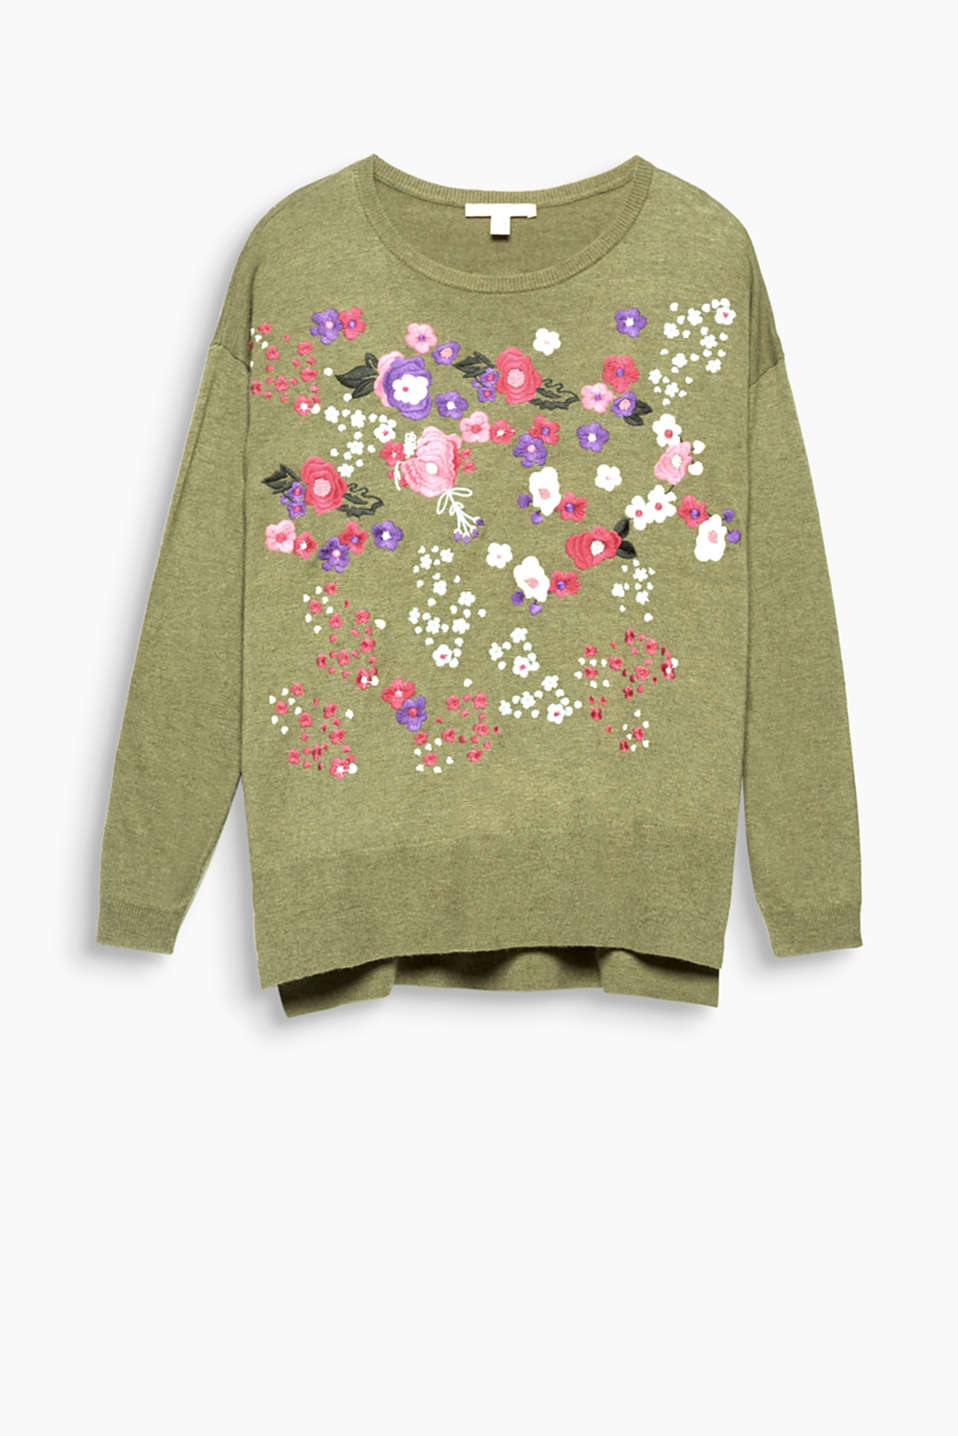 An ocean of flowers on this finely knit piece: jumper with colourful floral embroidery